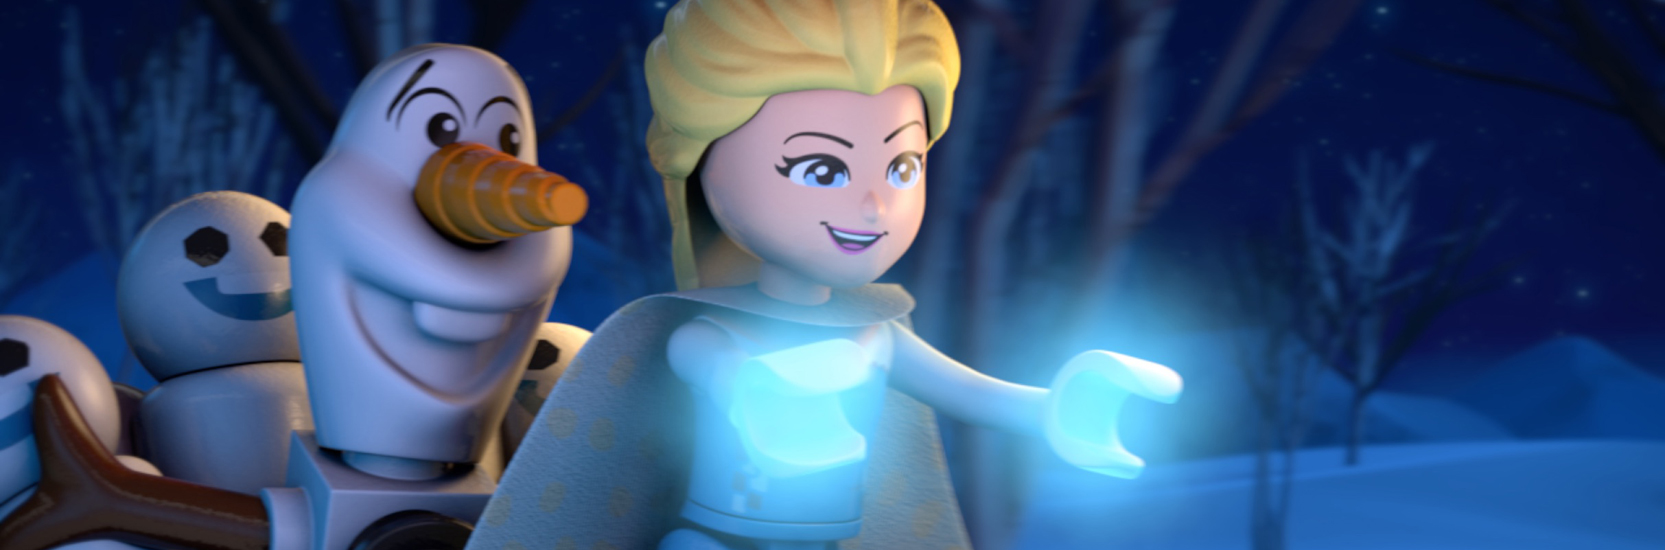 « Frozen Northern Lights » a son trailer : quand La Reine des Neiges rencontre Lego.